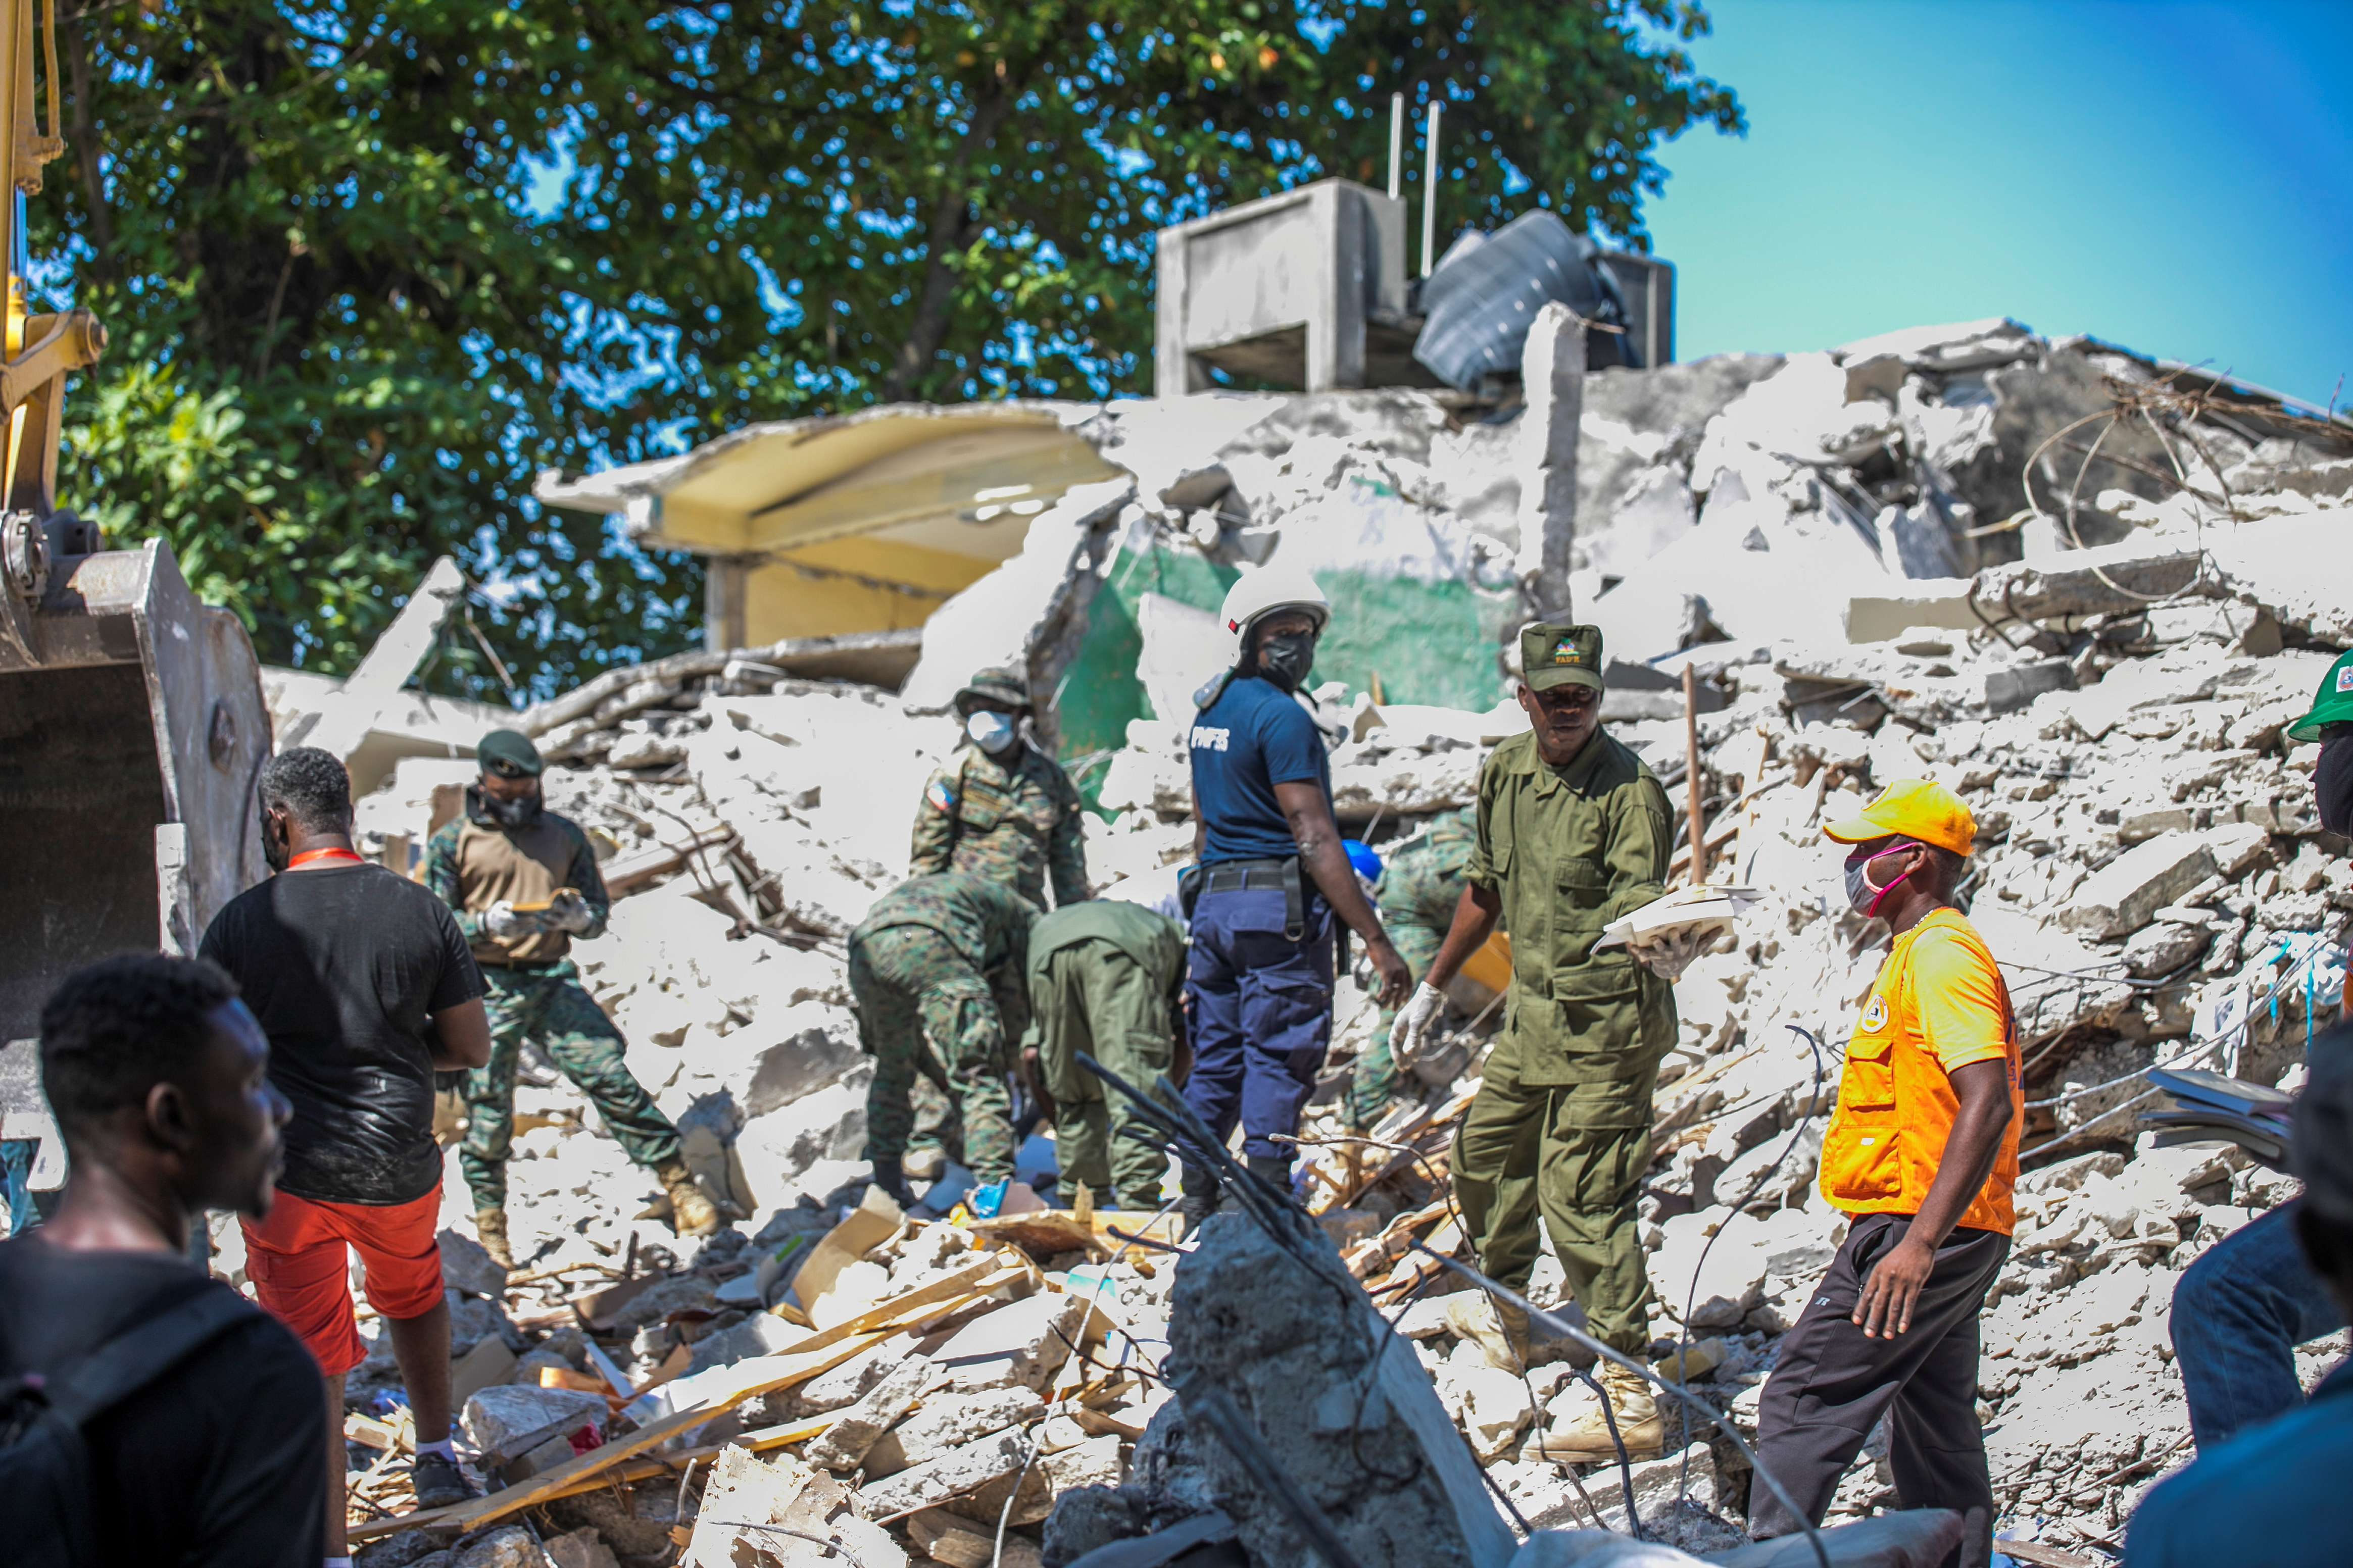 Soldiers and members of a rescue and protection team clean debris from a house after a 7.2 magnitude earthquake in Les Cayes, Haiti August 15, 2021. REUTERS/Ralph Tedy Erol NO RESALES. NO ARCHIVES